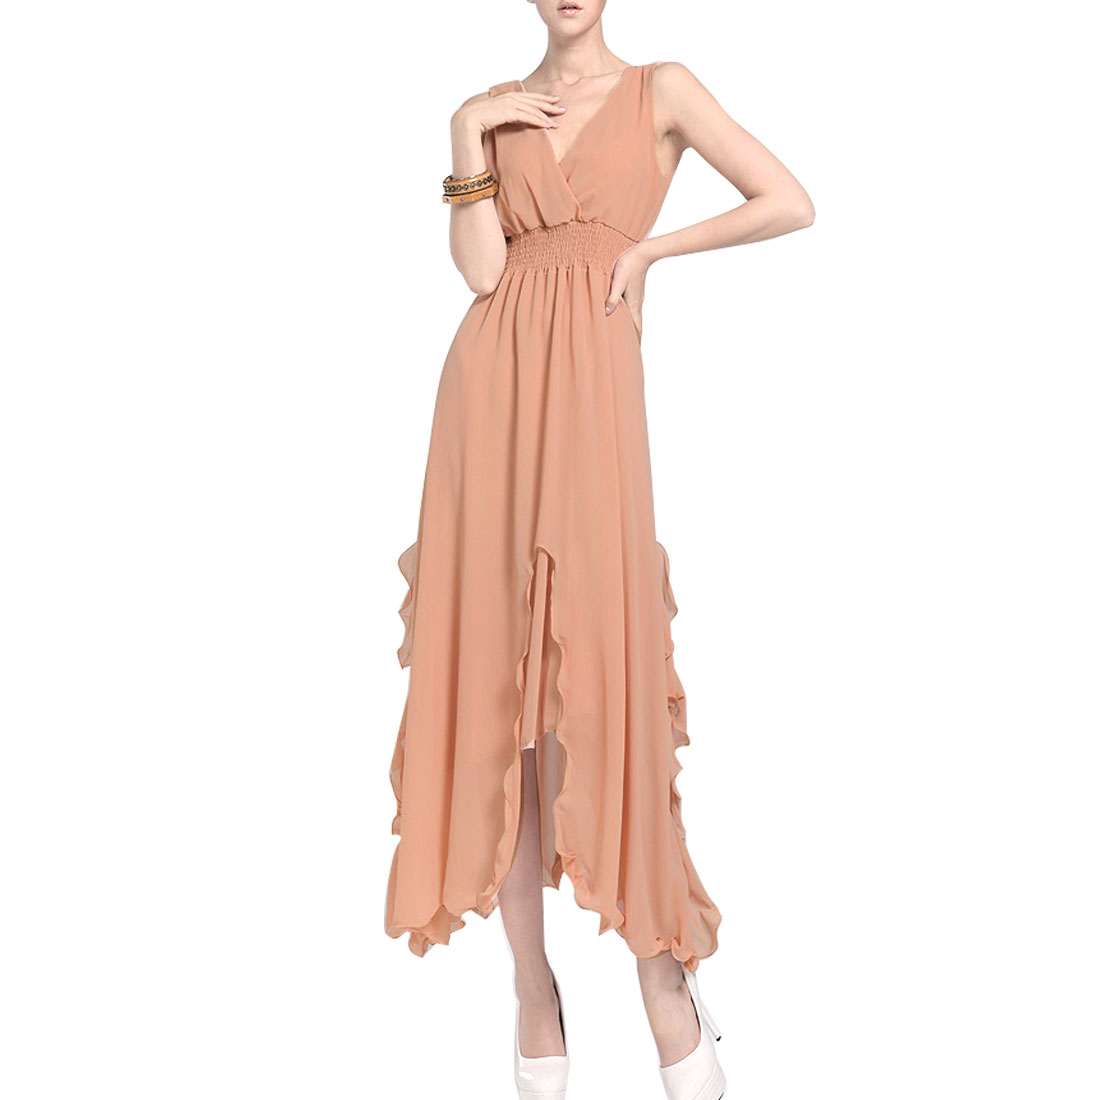 Summer Sleeveless Elastic Waist Chiffon Dress Peach Pink XS for Ladies